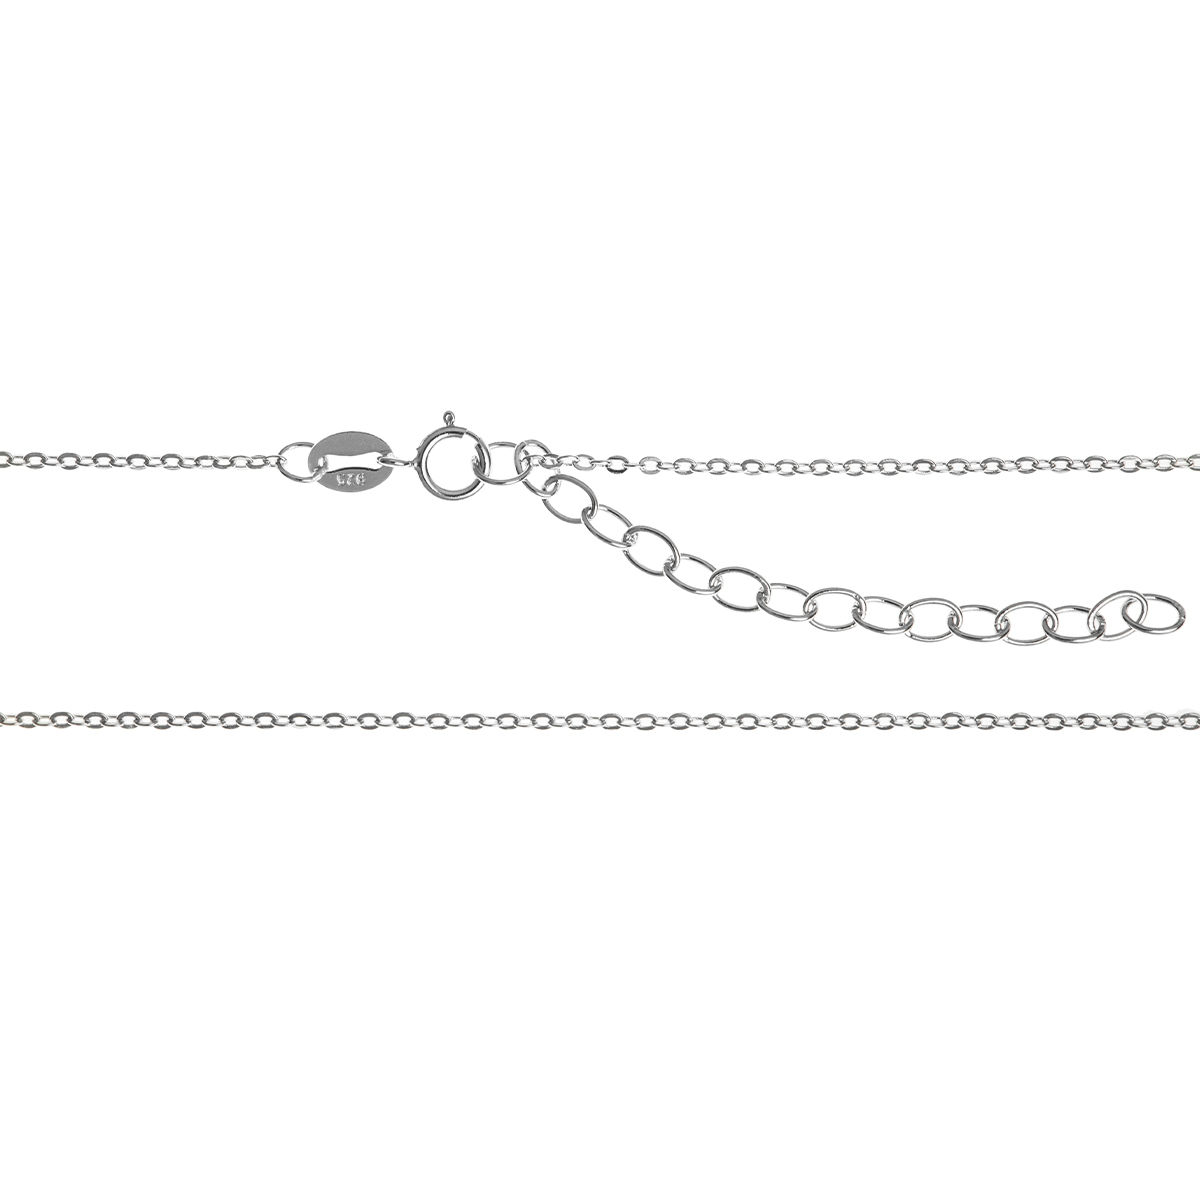 Rhodium on Sterling Silver Oval Ring Rolo Link Cable Chain Necklace with Extender Spring Clasp 16""